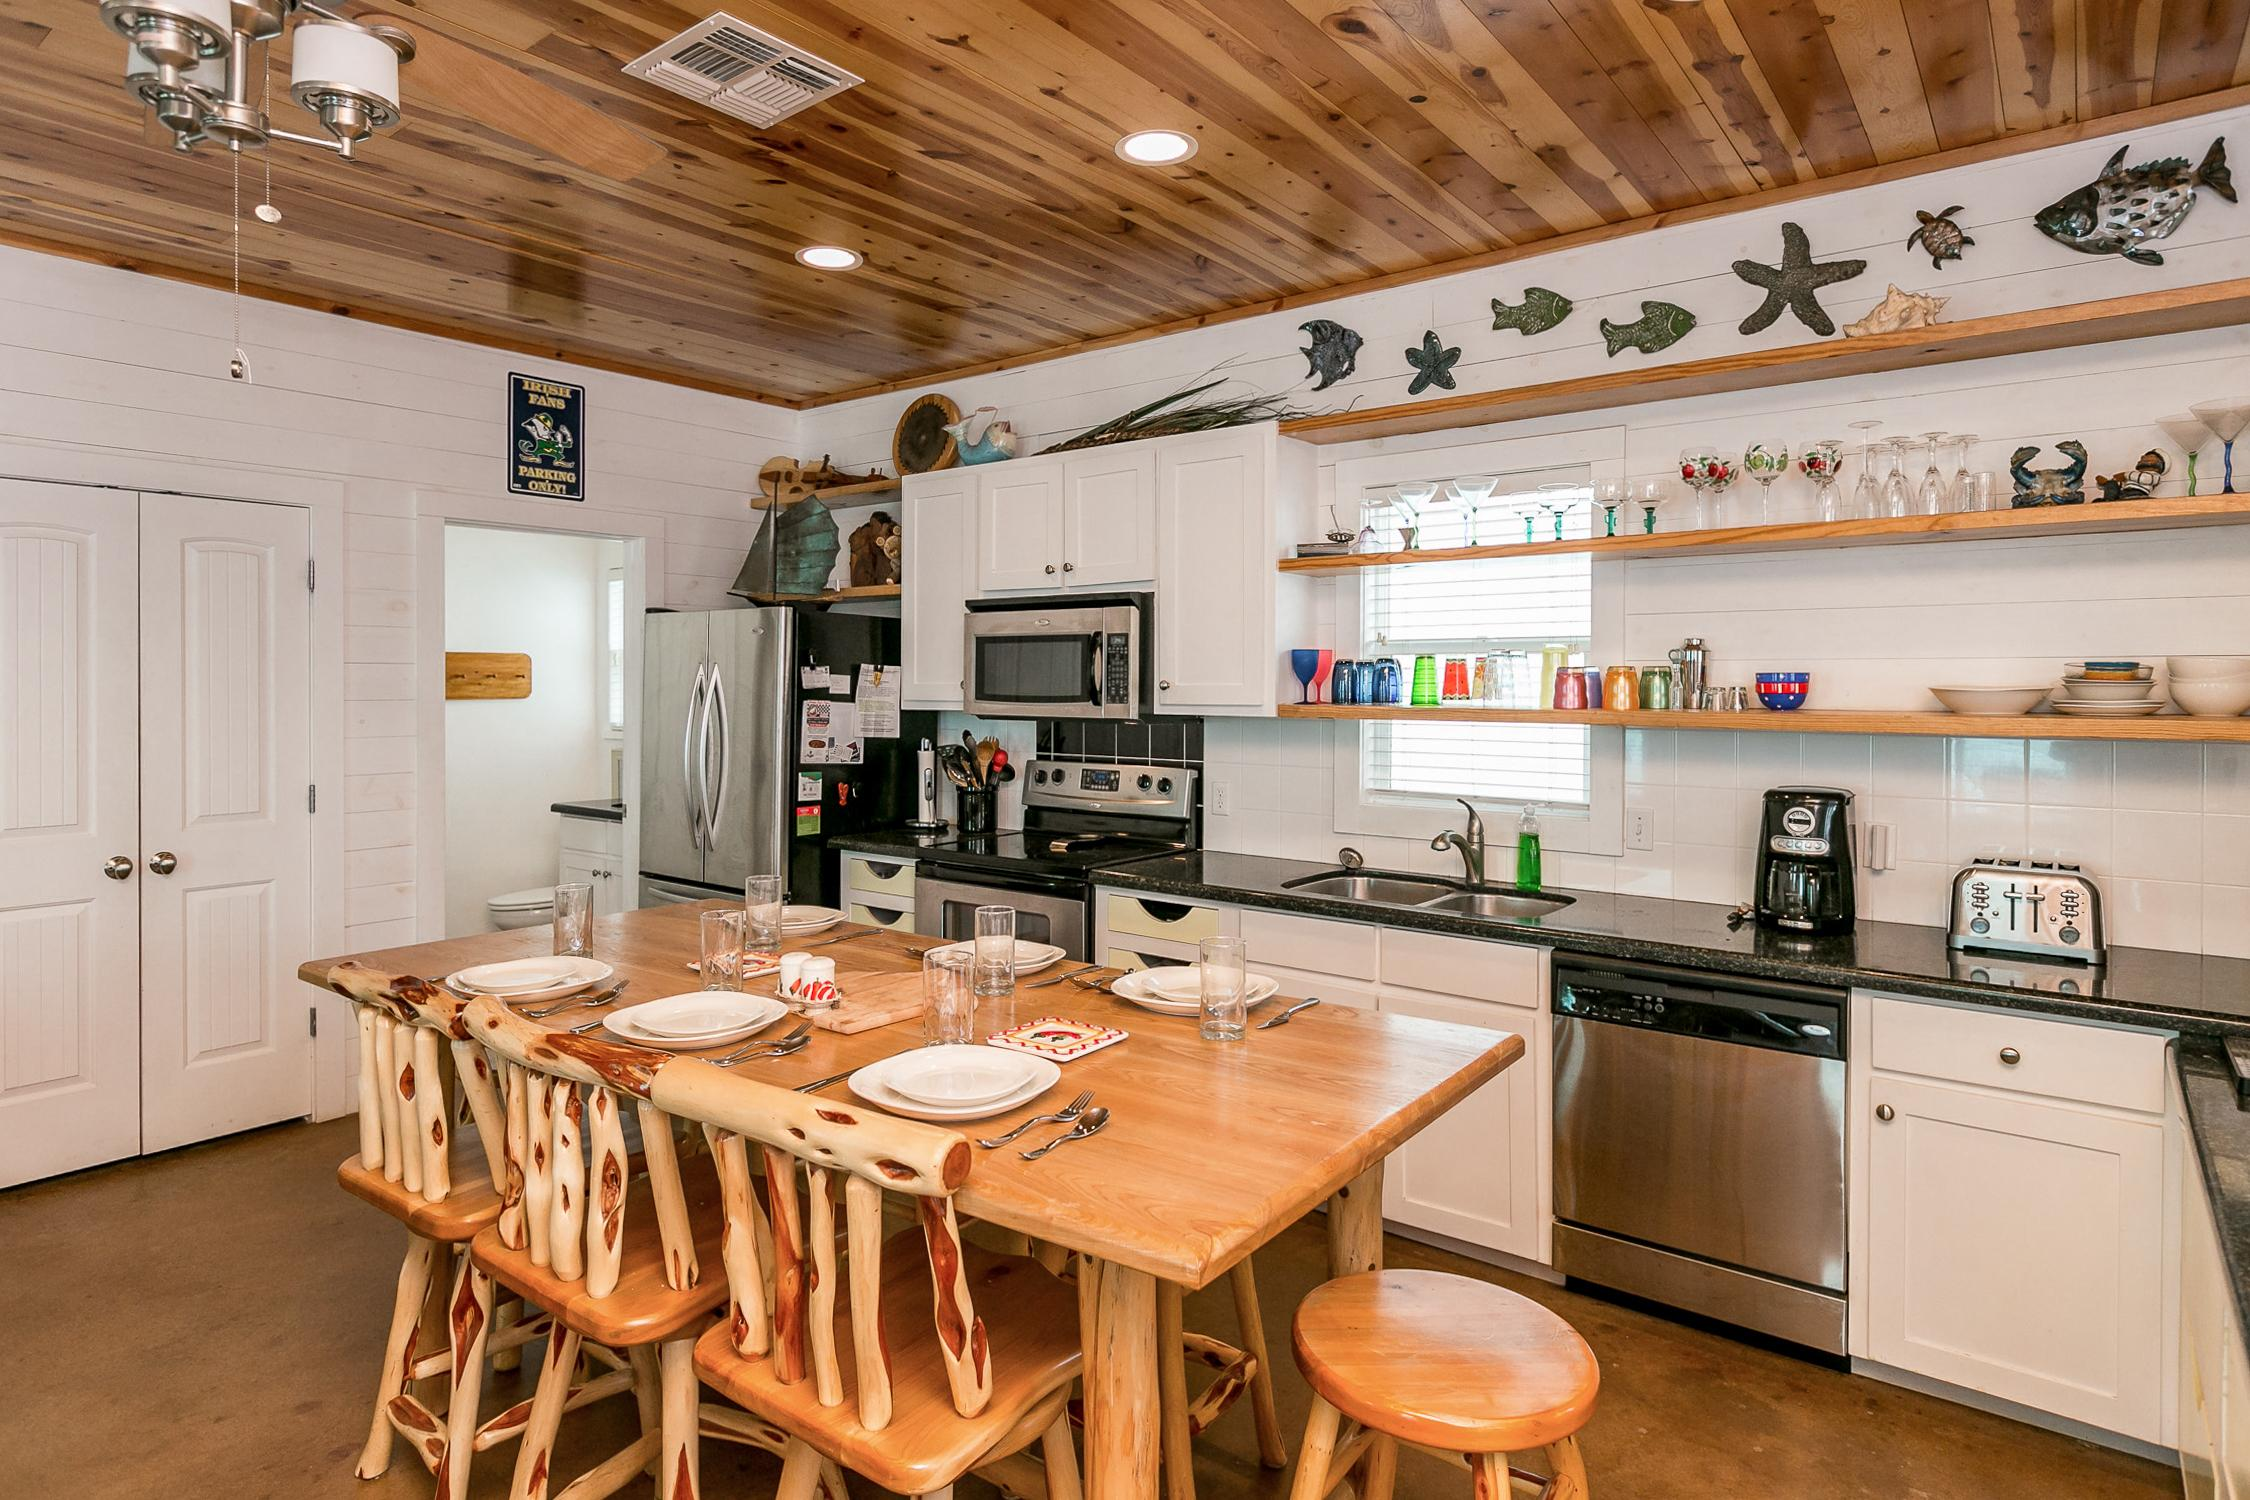 The kitchen is equipped with modern stainless steel appliances, open shelves, and even a small kegerator.